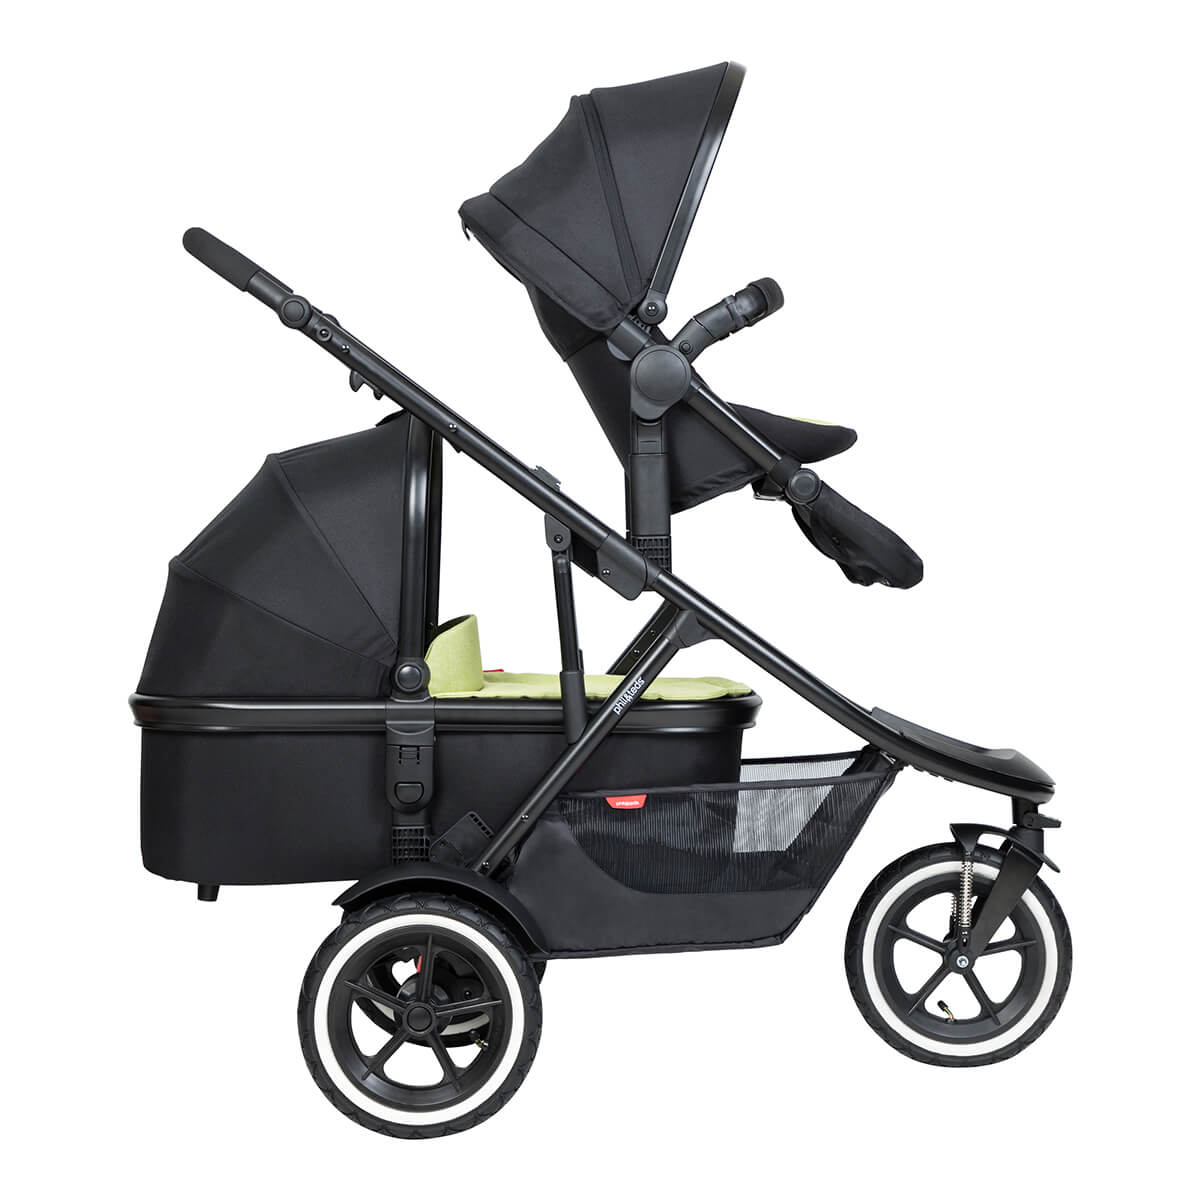 https://cdn.accentuate.io/4546157248617/19119322726505/philteds-sport-buggy-with-double-kit-extended-clip-and-snug-carrycot-side-view-v1626484907443.jpg?1200x1200